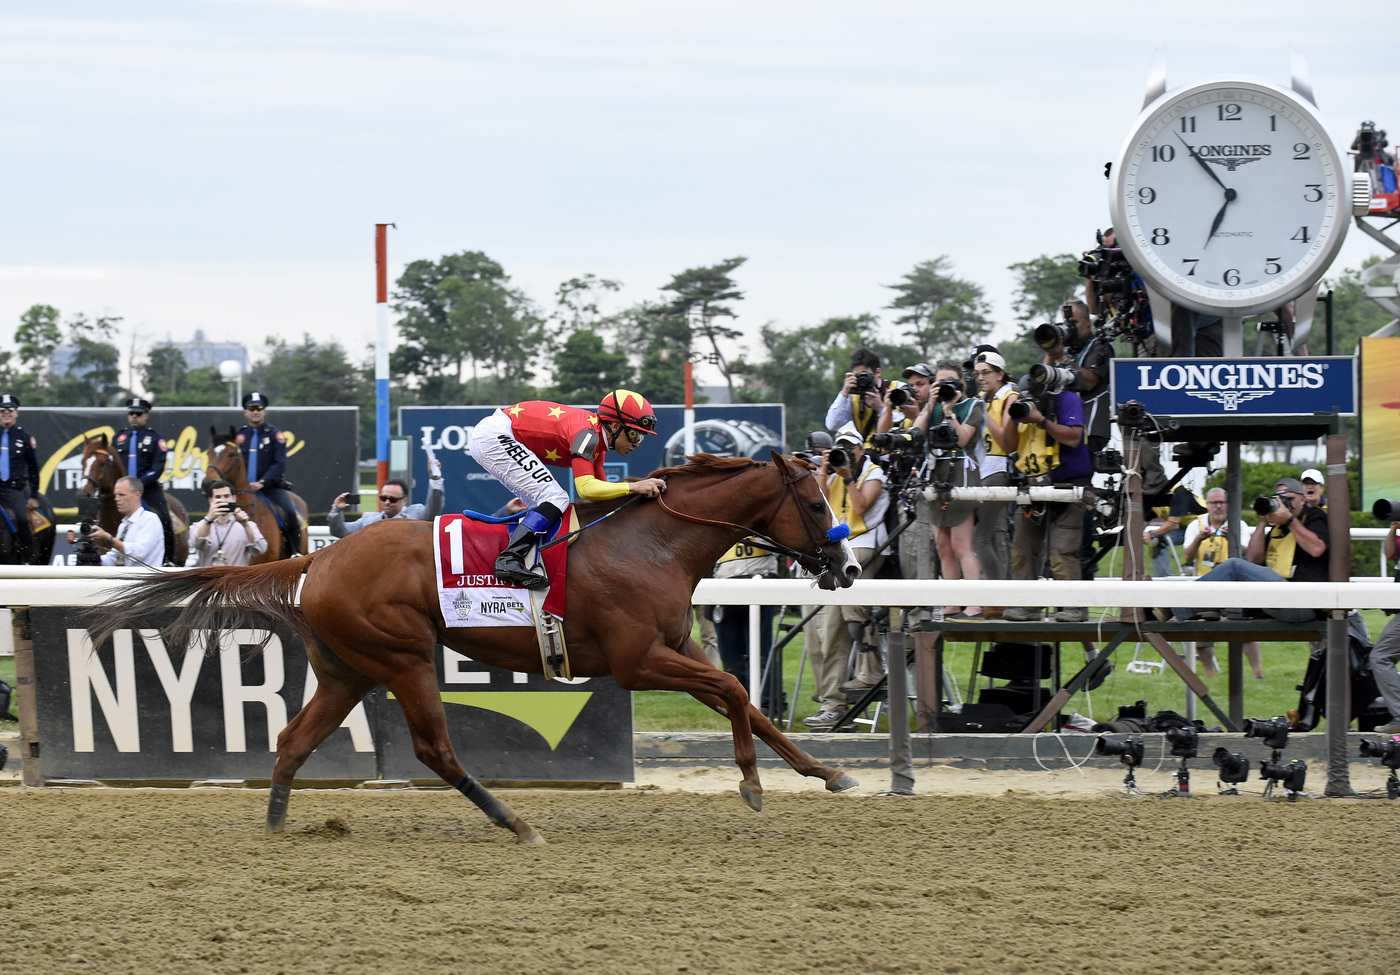 Longines Flat Racing Event: Longines to continue as Official Timekeeper and Official Watch of Belmont Park and Saratoga Race Course 2